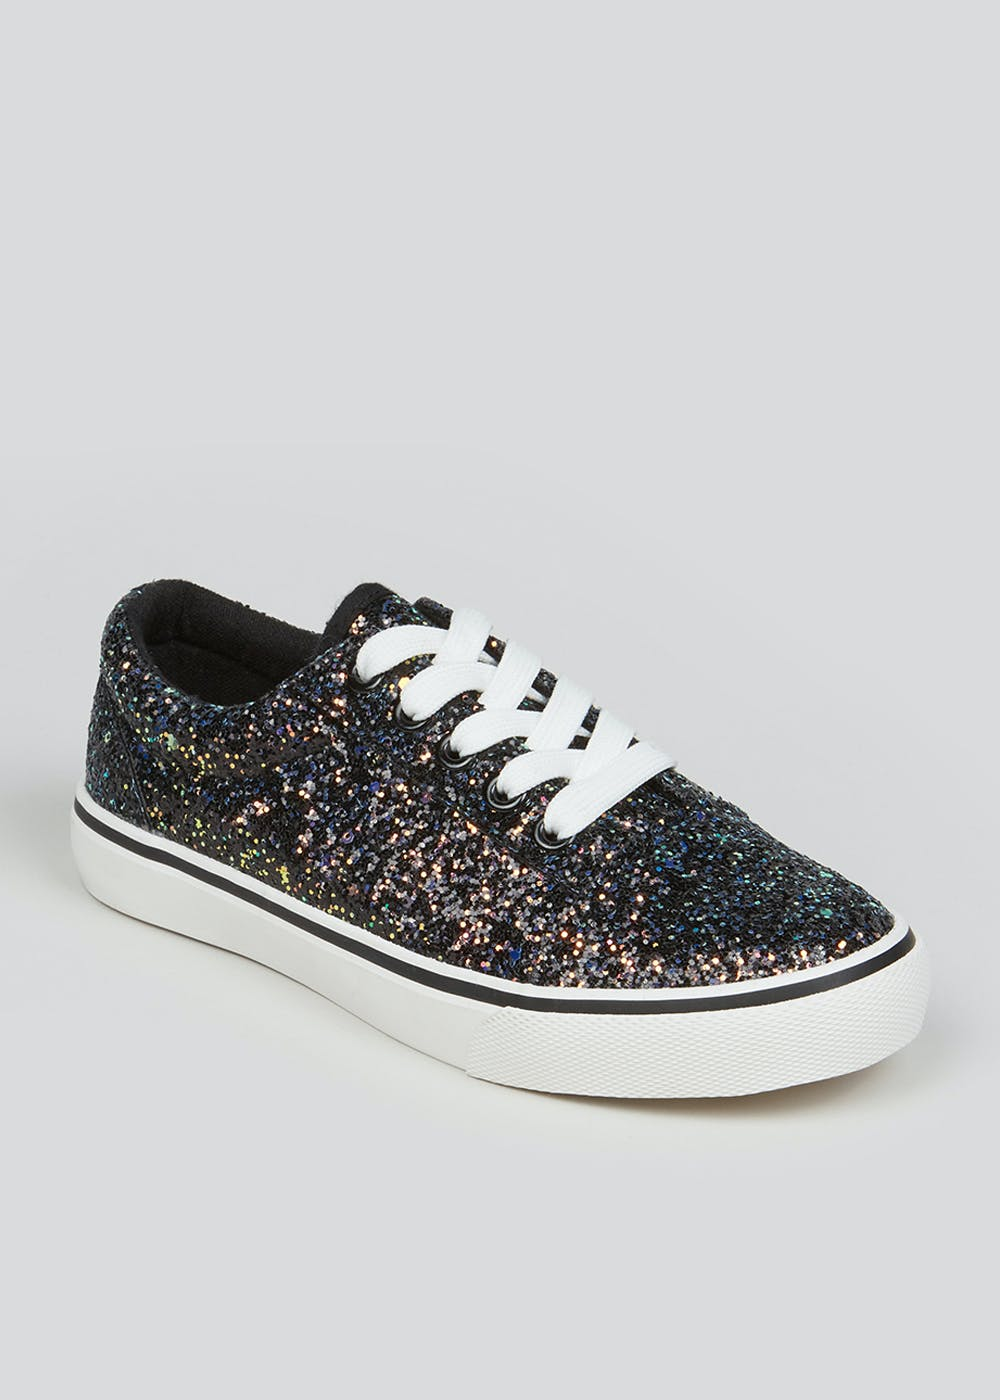 Girls Black Glitter Lace Up Trainers (Younger 10-Older 5) – Black